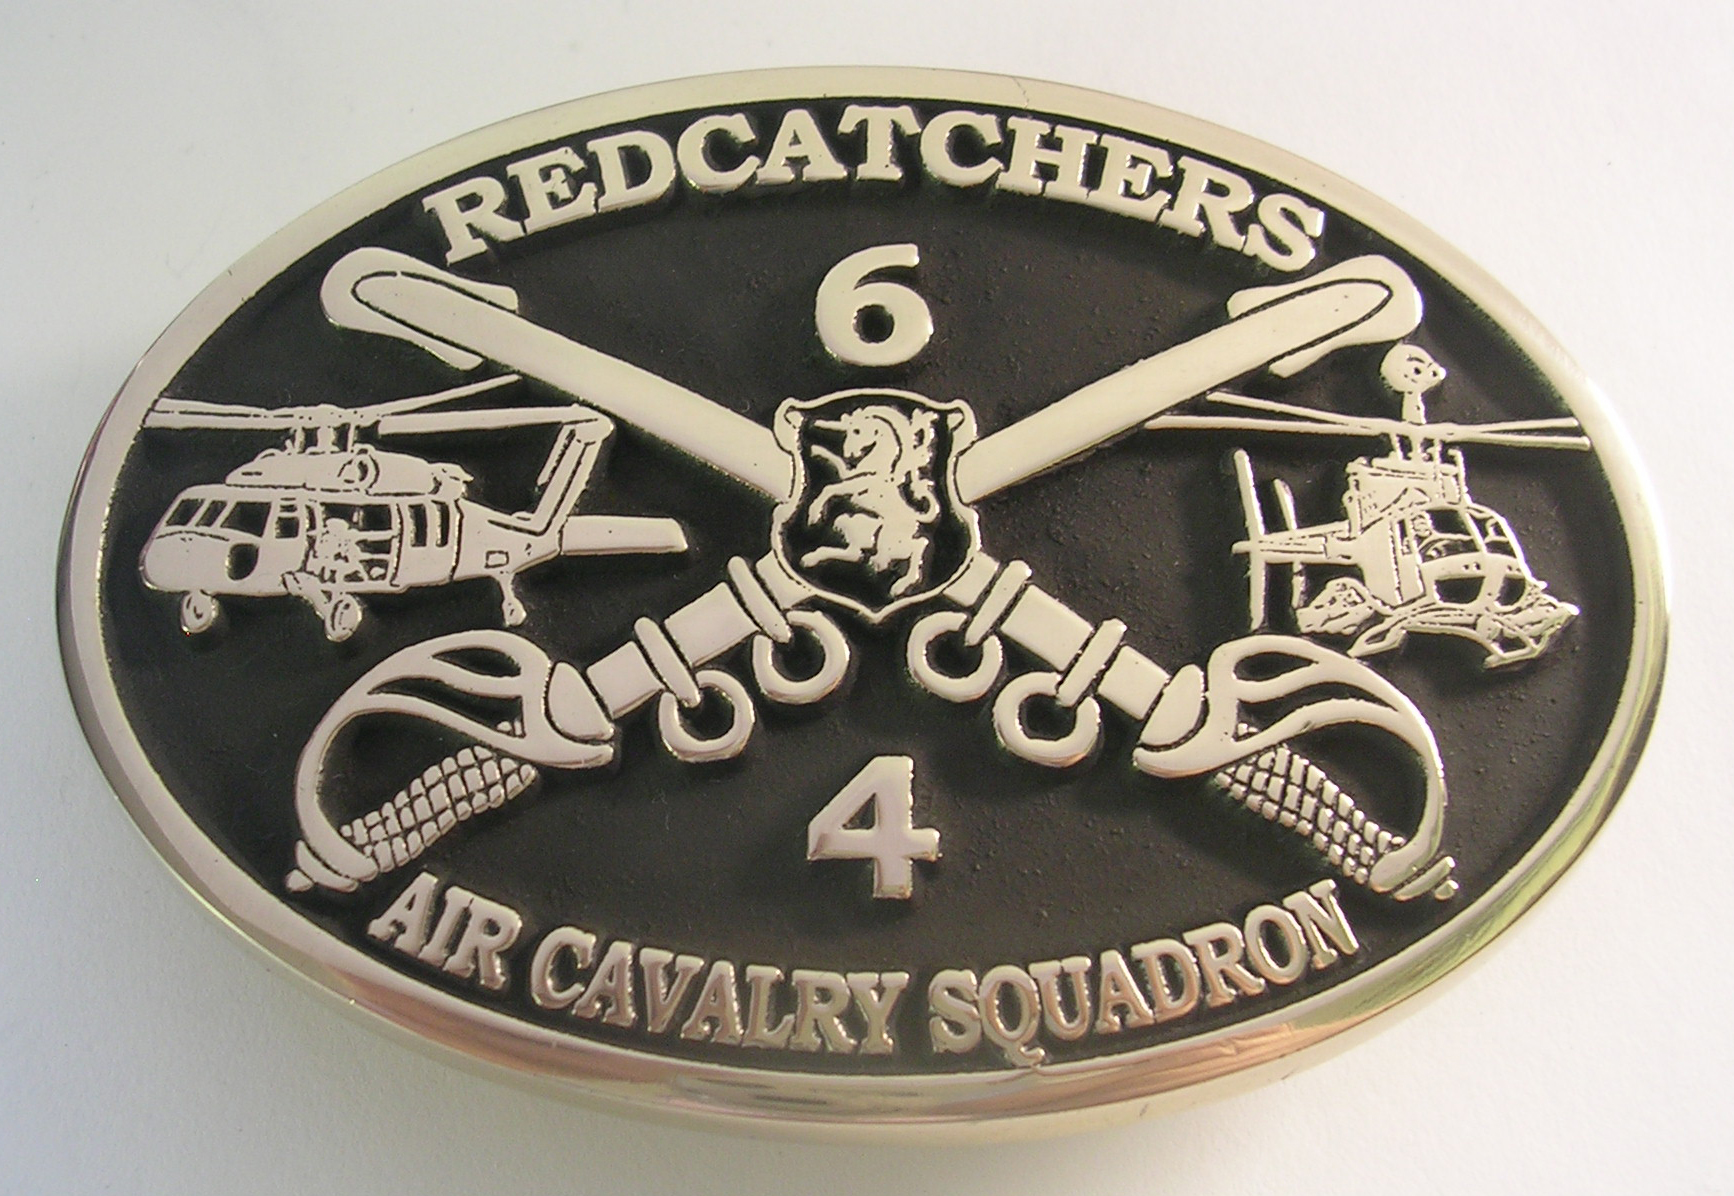 RedCatchers Air Cavalry Squadron Belt Buckle